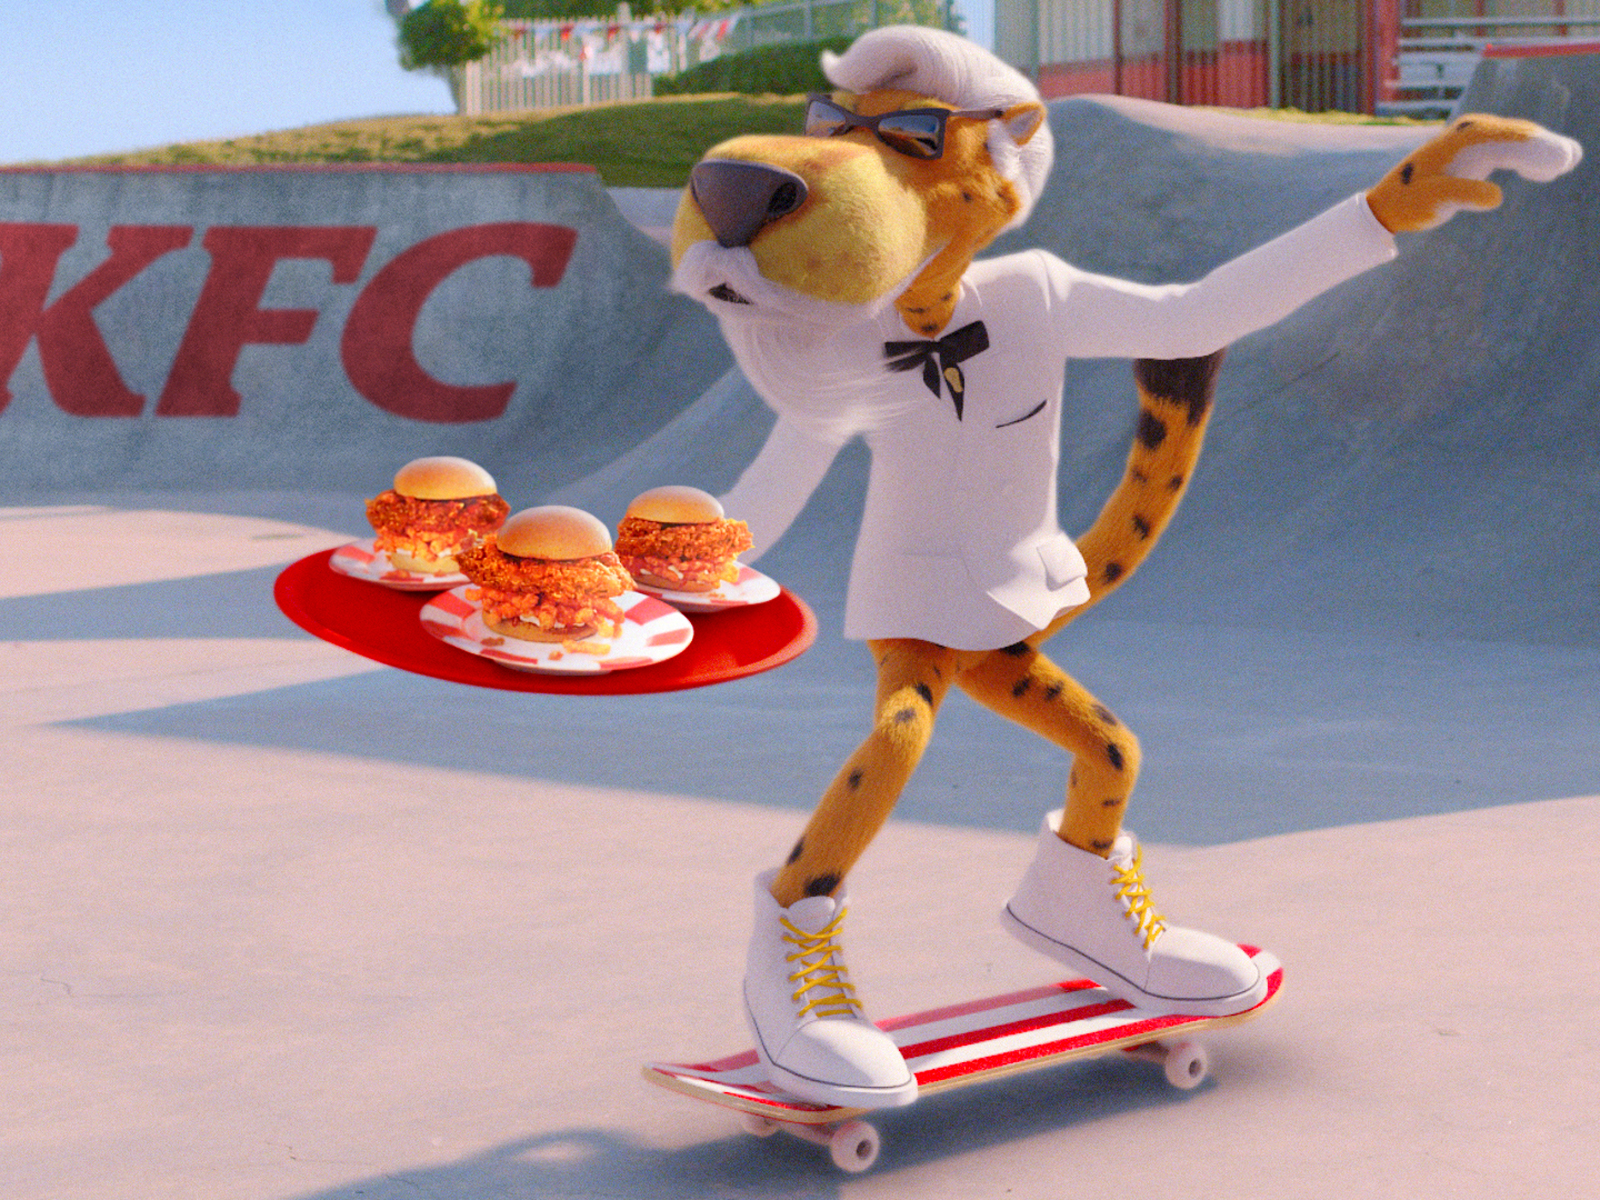 Chester Cheetah Is the New Colonel Sanders and, Yeah, This Totally Makes Sense